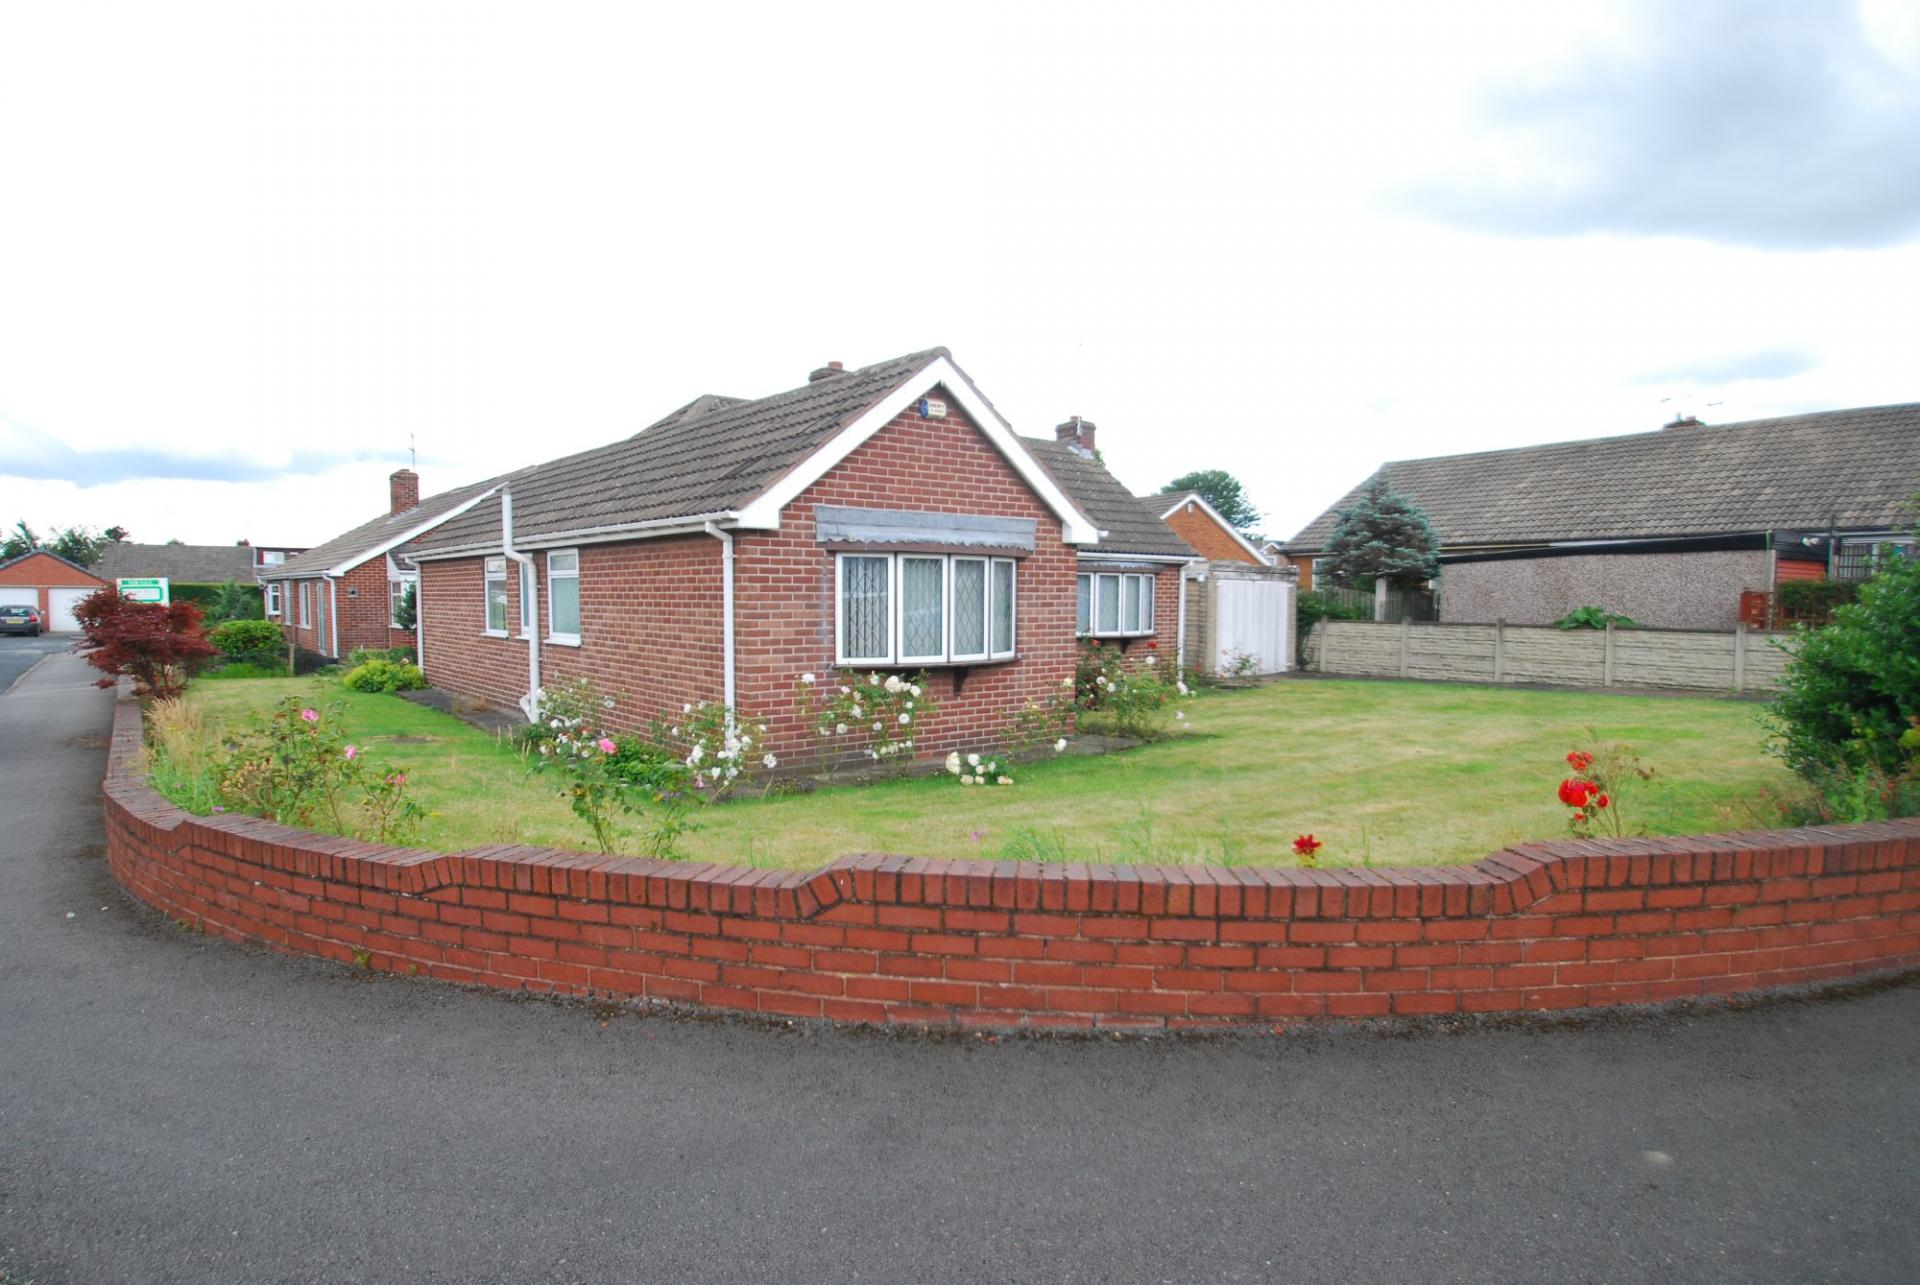 Property For Sale In Monk Bretton